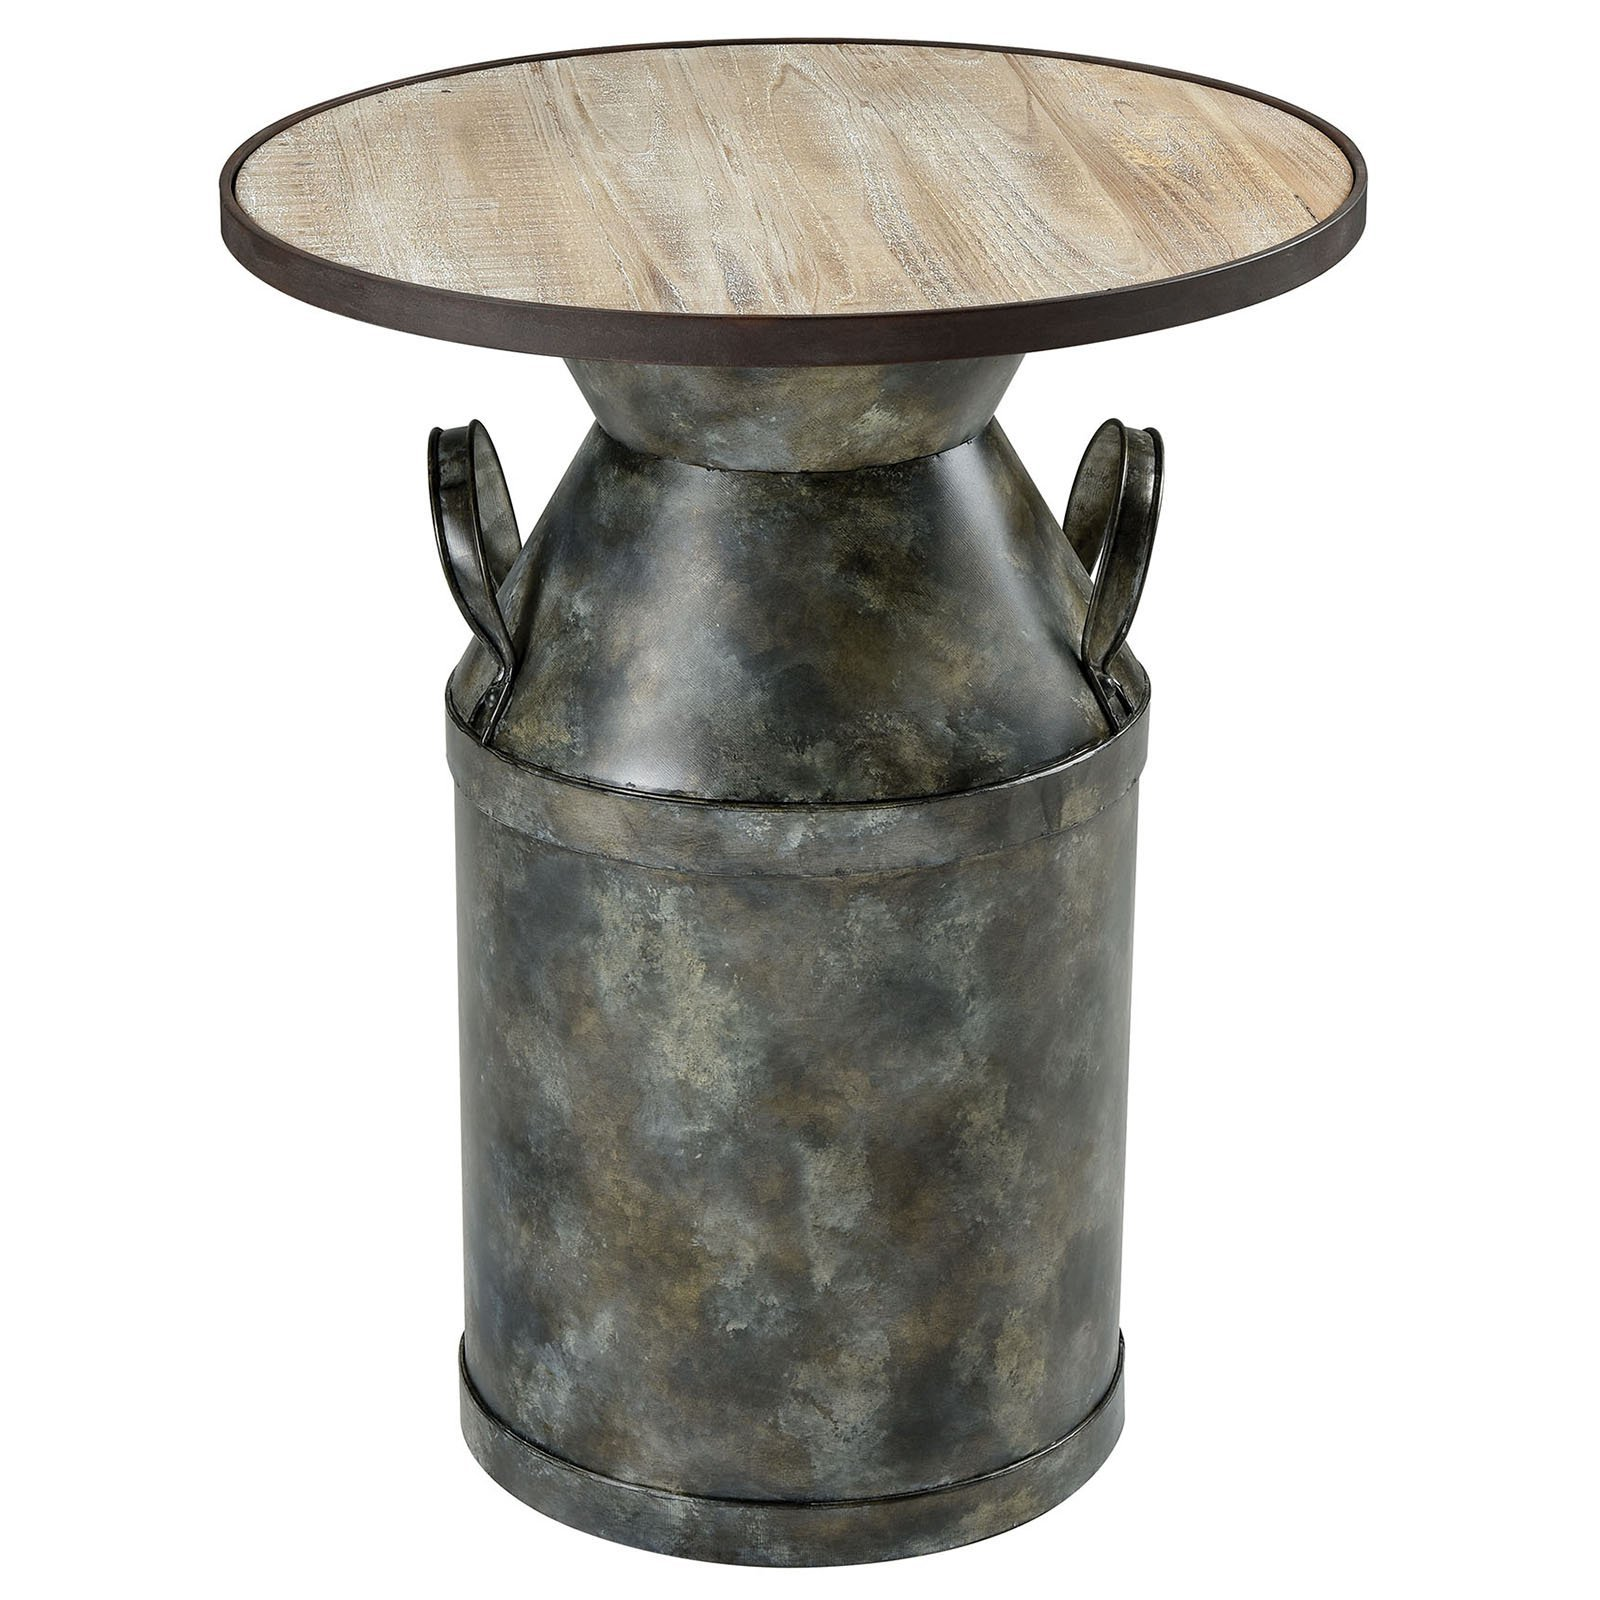 spacious skies farmhouse accent tables antique black fratantoni table lifestyles wireless desk lamp french marble bistro small white mirrored bedside home decor ping sites top